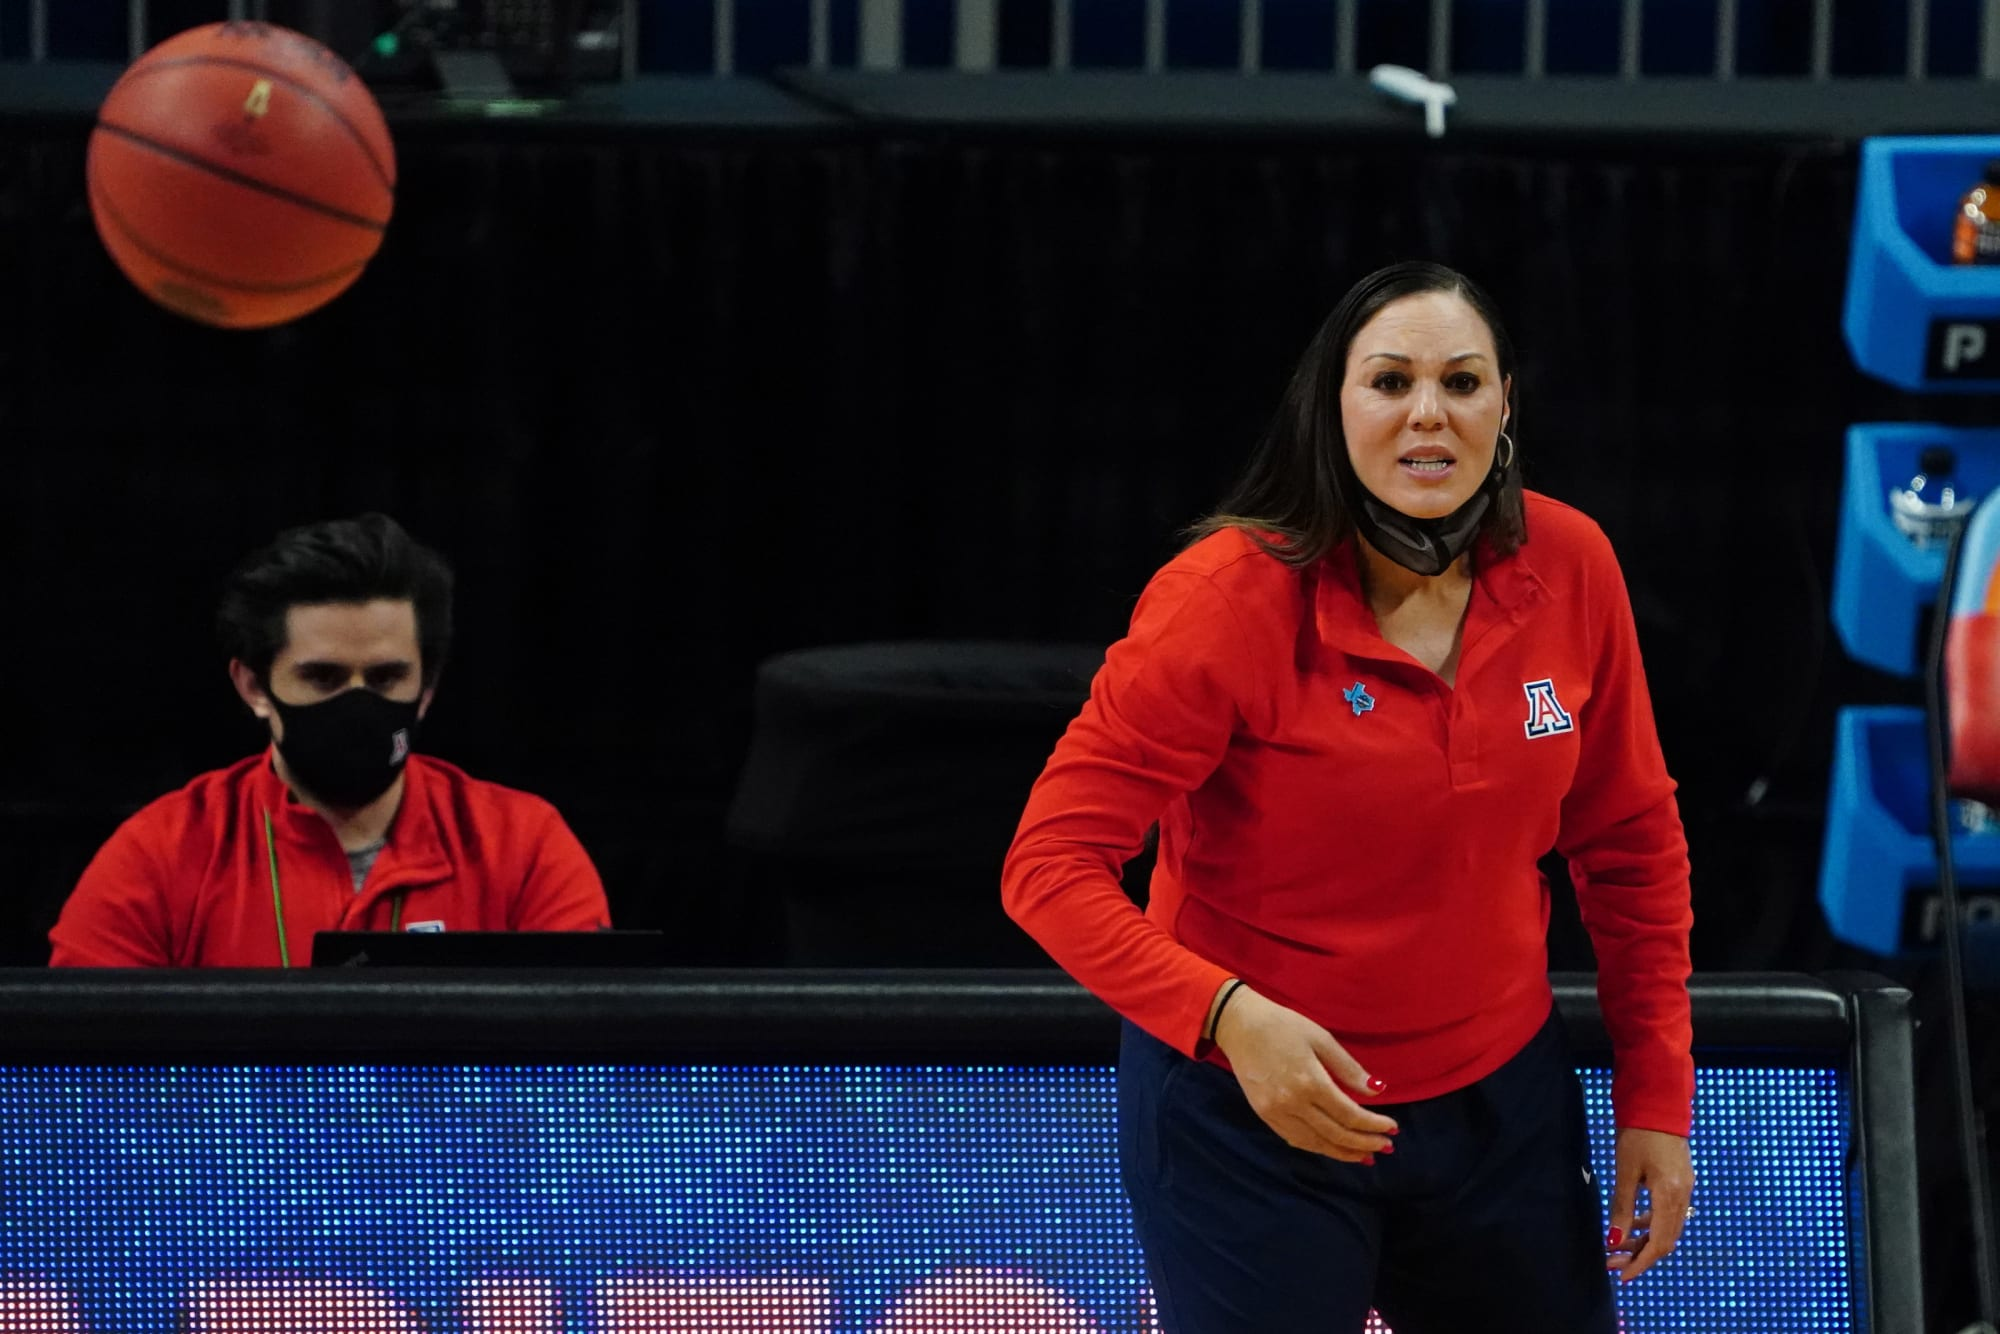 Adia Barnes to coach with Team USA AmeriCup